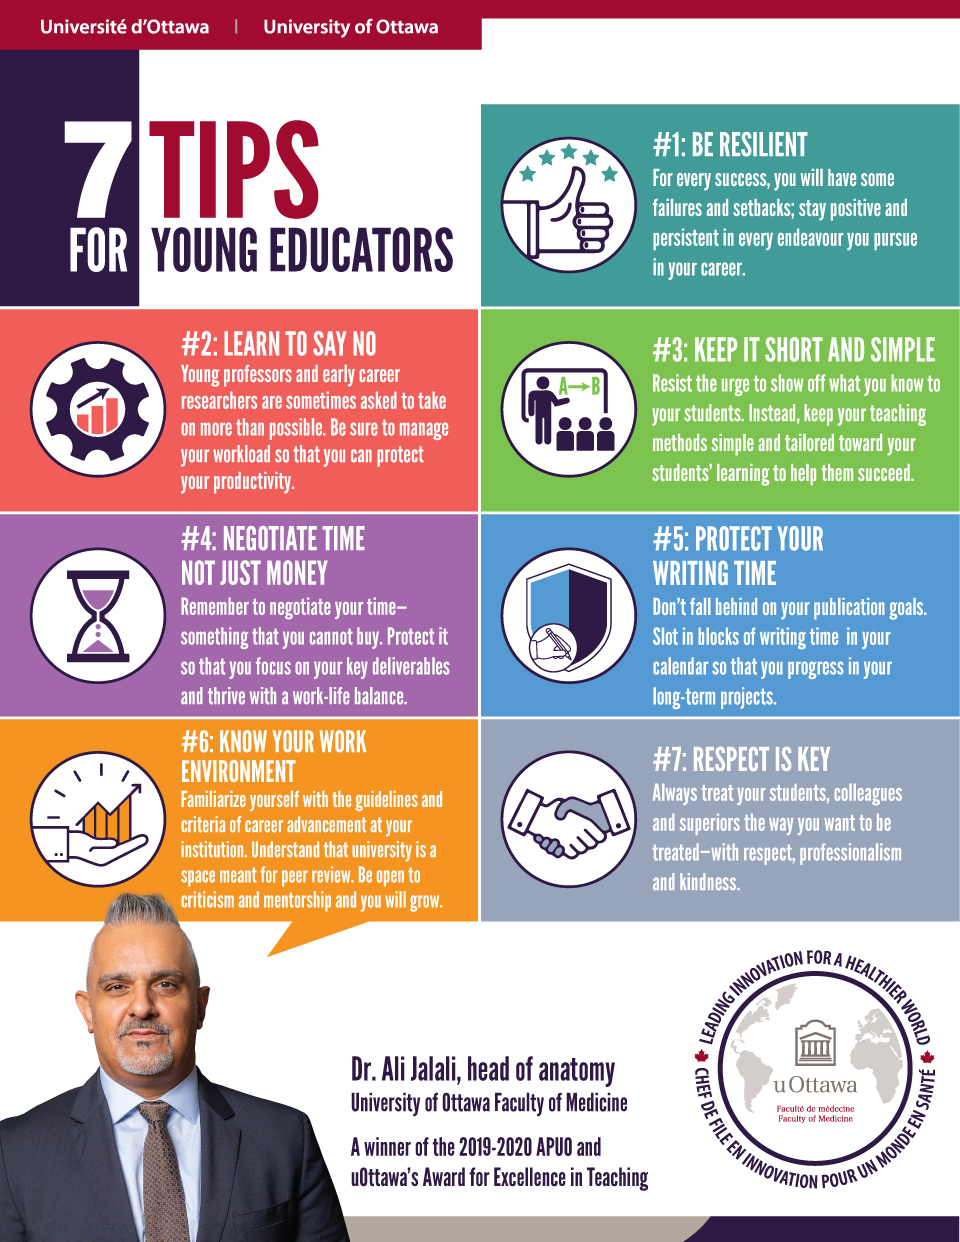 7 Tips for Young Educators